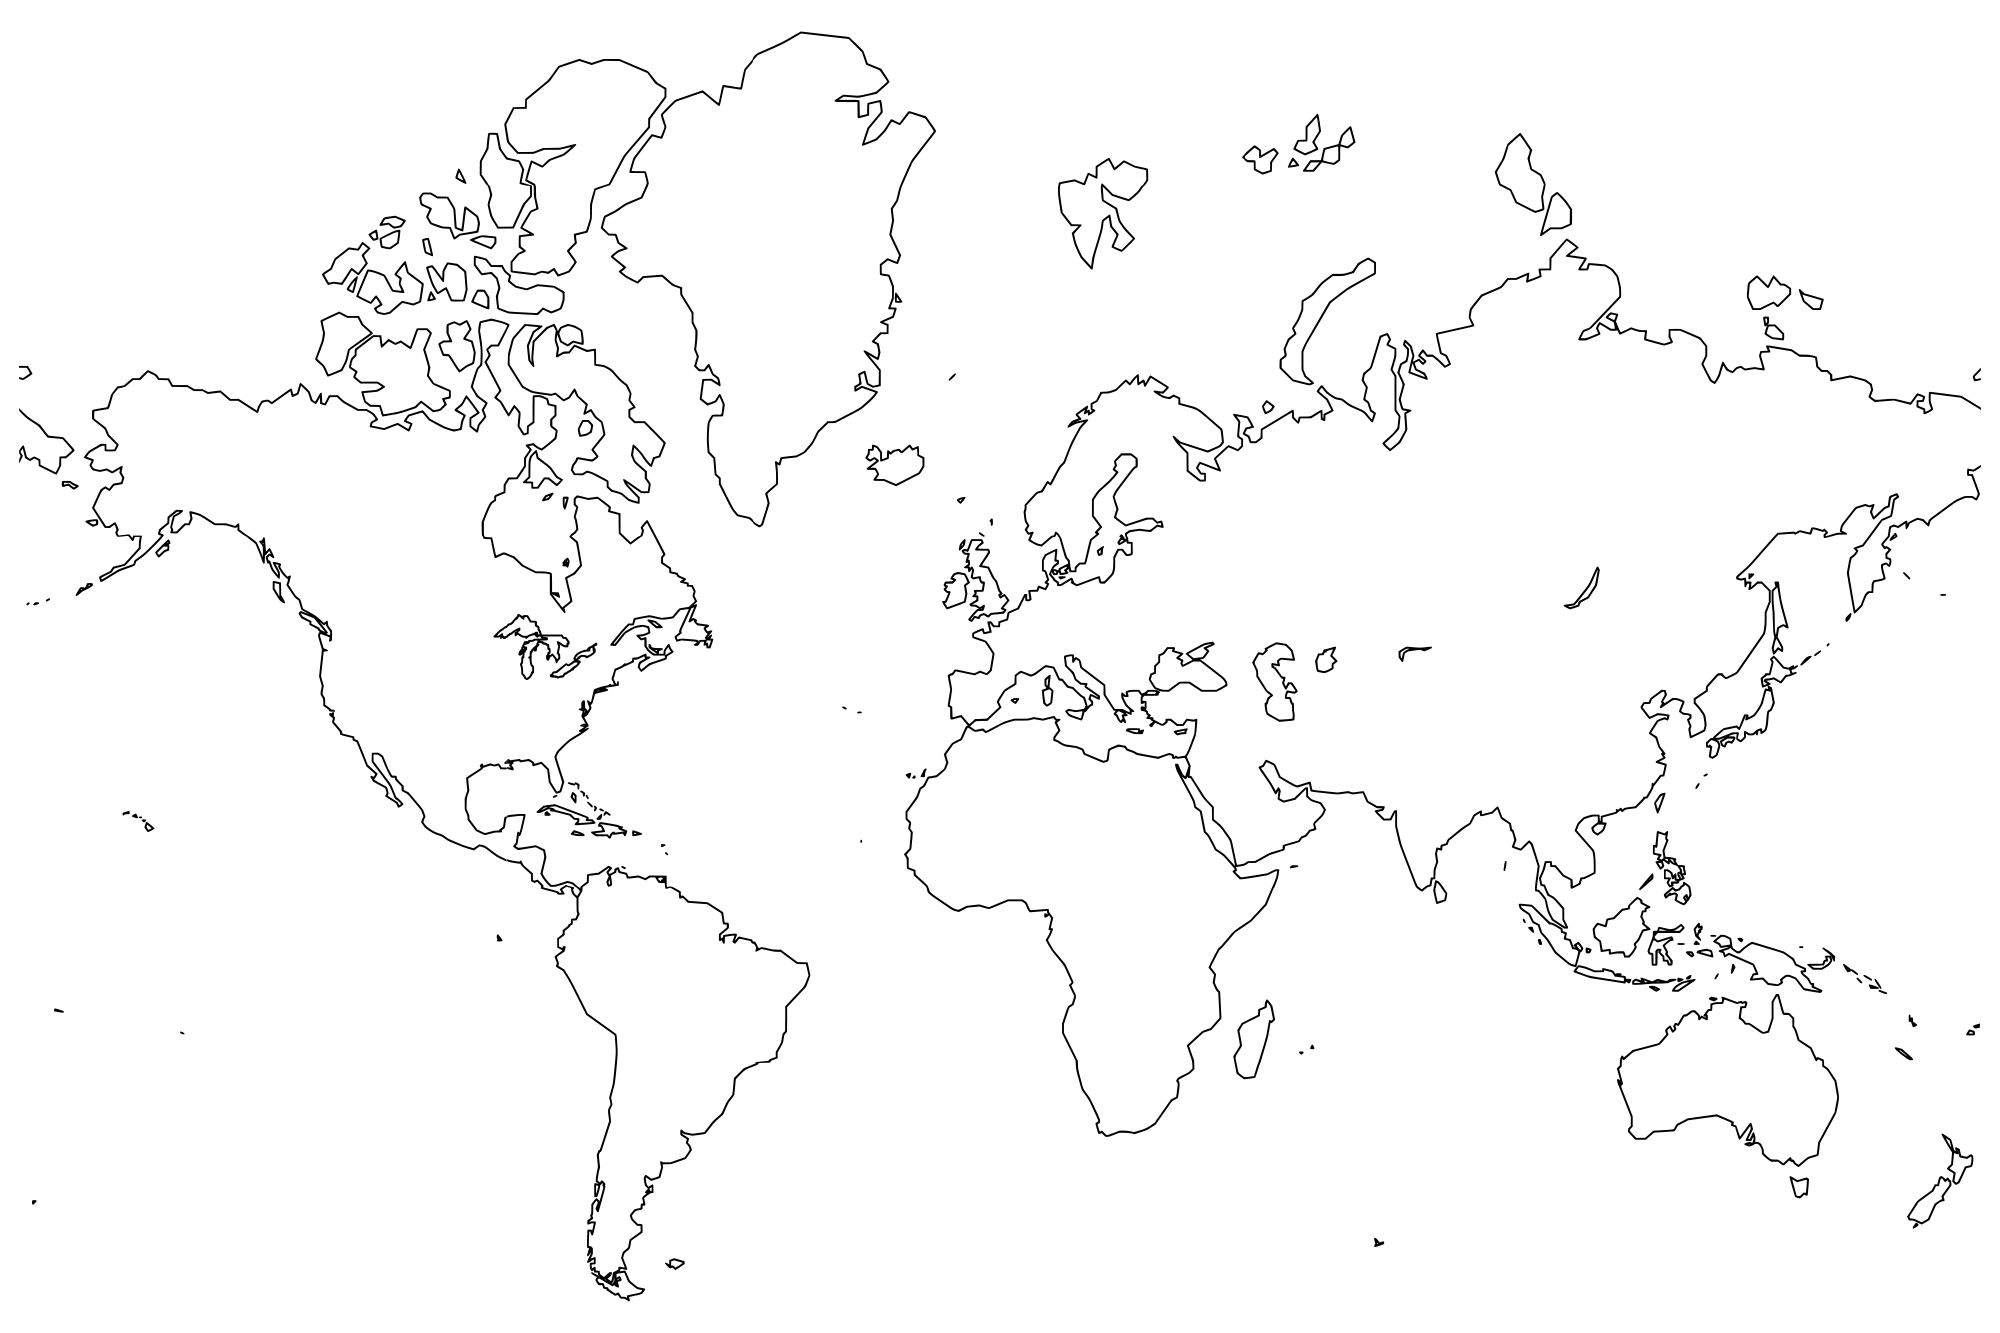 Printable World Maps In Black And White And Travel Information - Free Printable Blank World Map Download